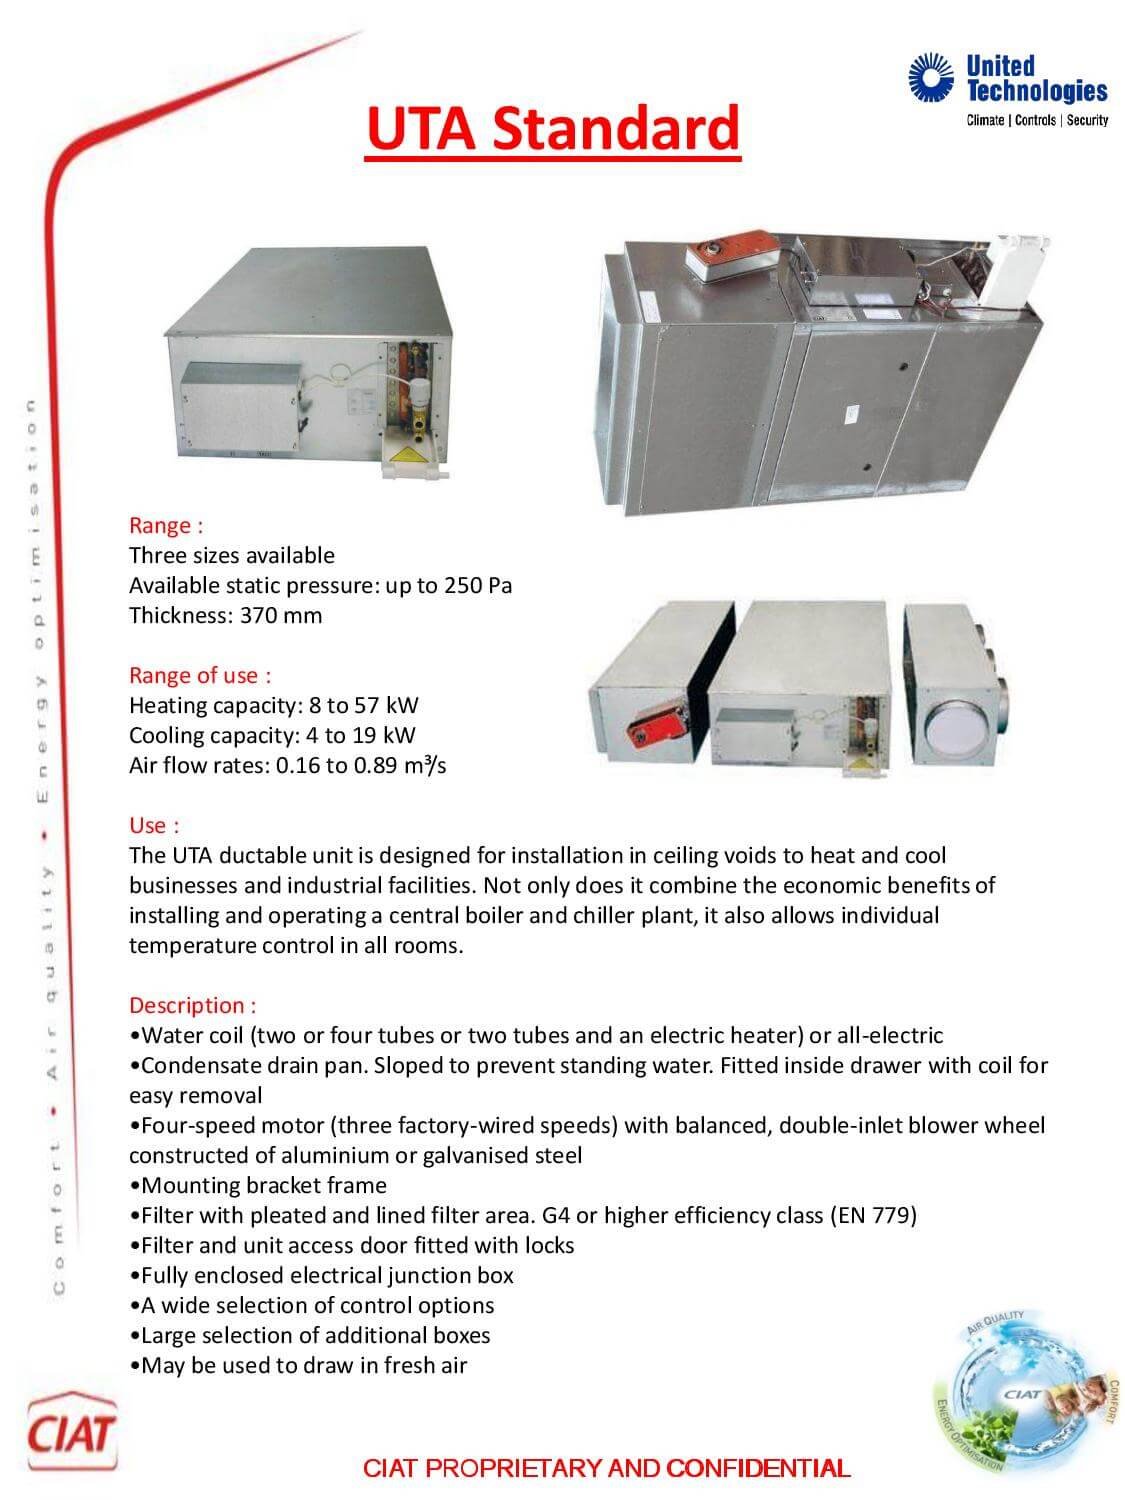 Uta Standard Ducted Ciat Air Conditioning And Heating